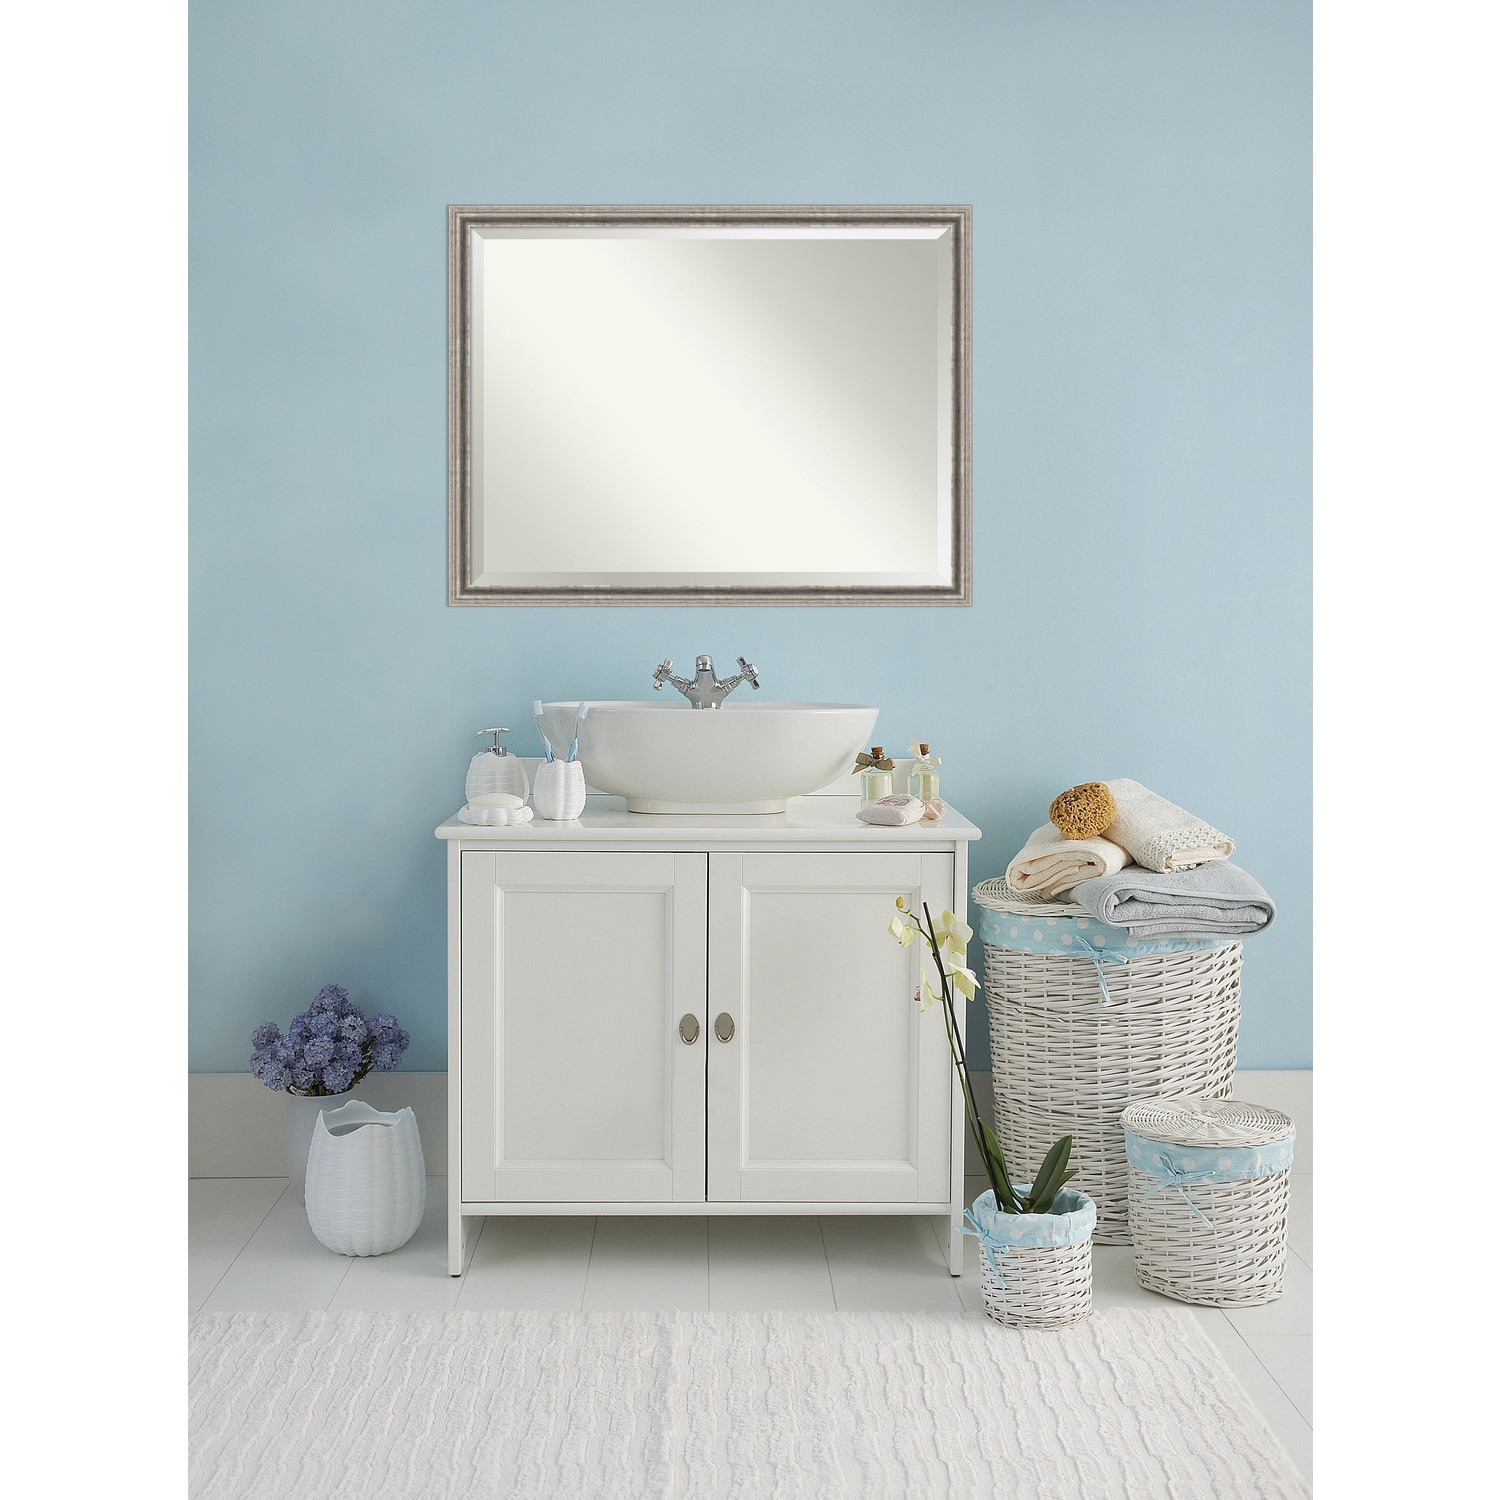 Bathroom Mirror Oversize Large, Bel Volto Silver 43 x 33-inch - Free ...